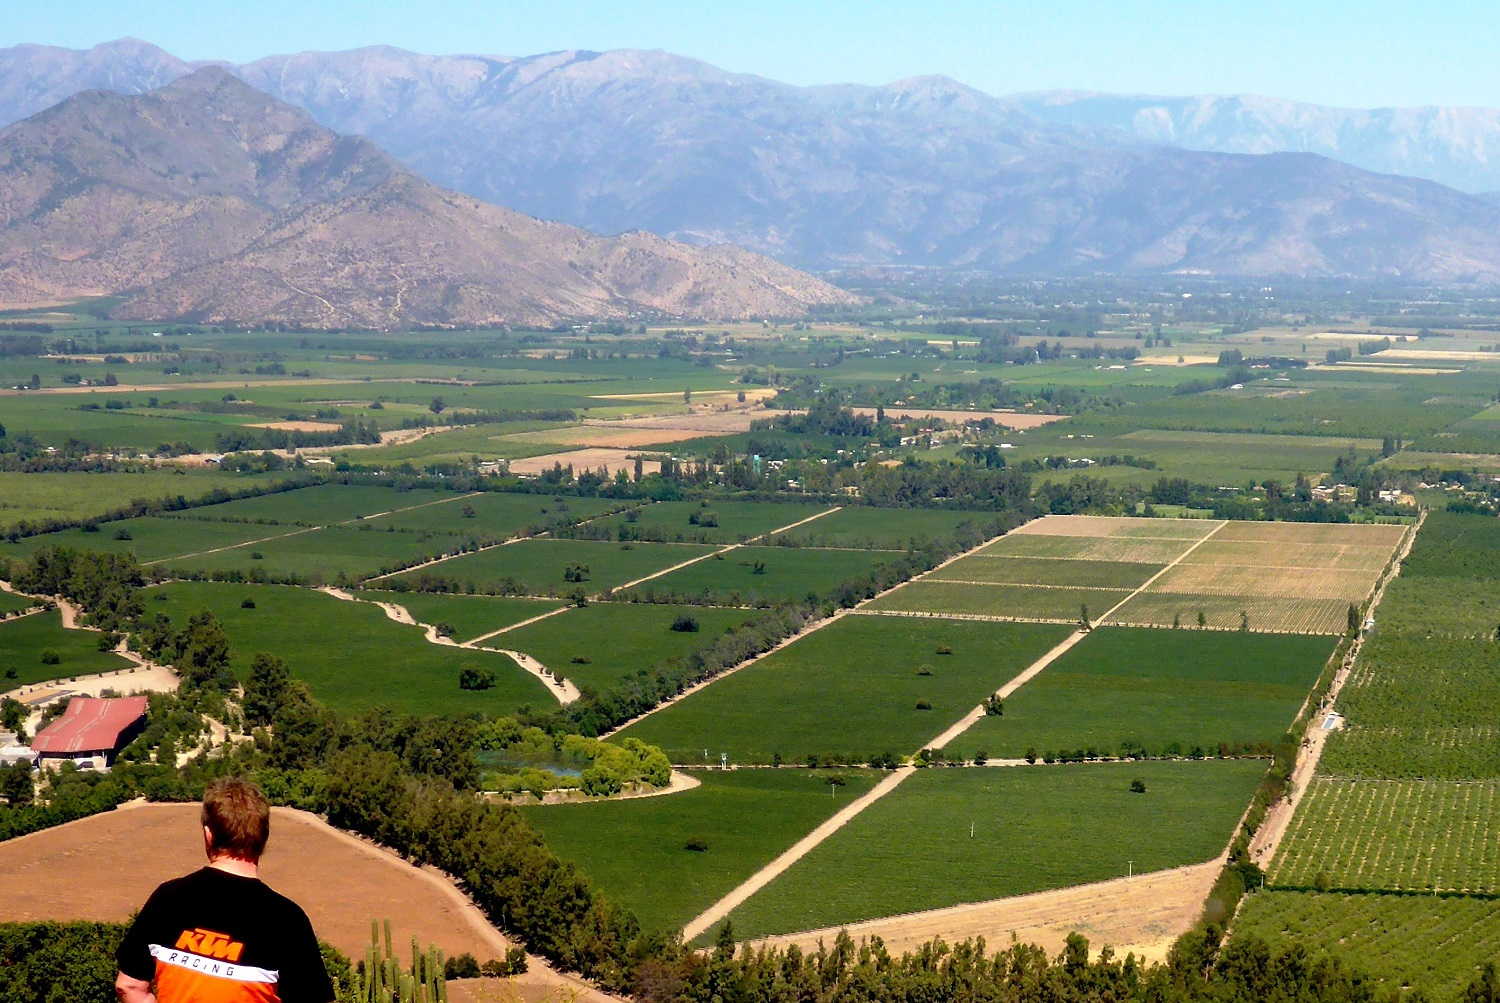 Blick auf die Weingärten im Tal des Maipo-Flusses | View of the vineyards in the Maipo river valley